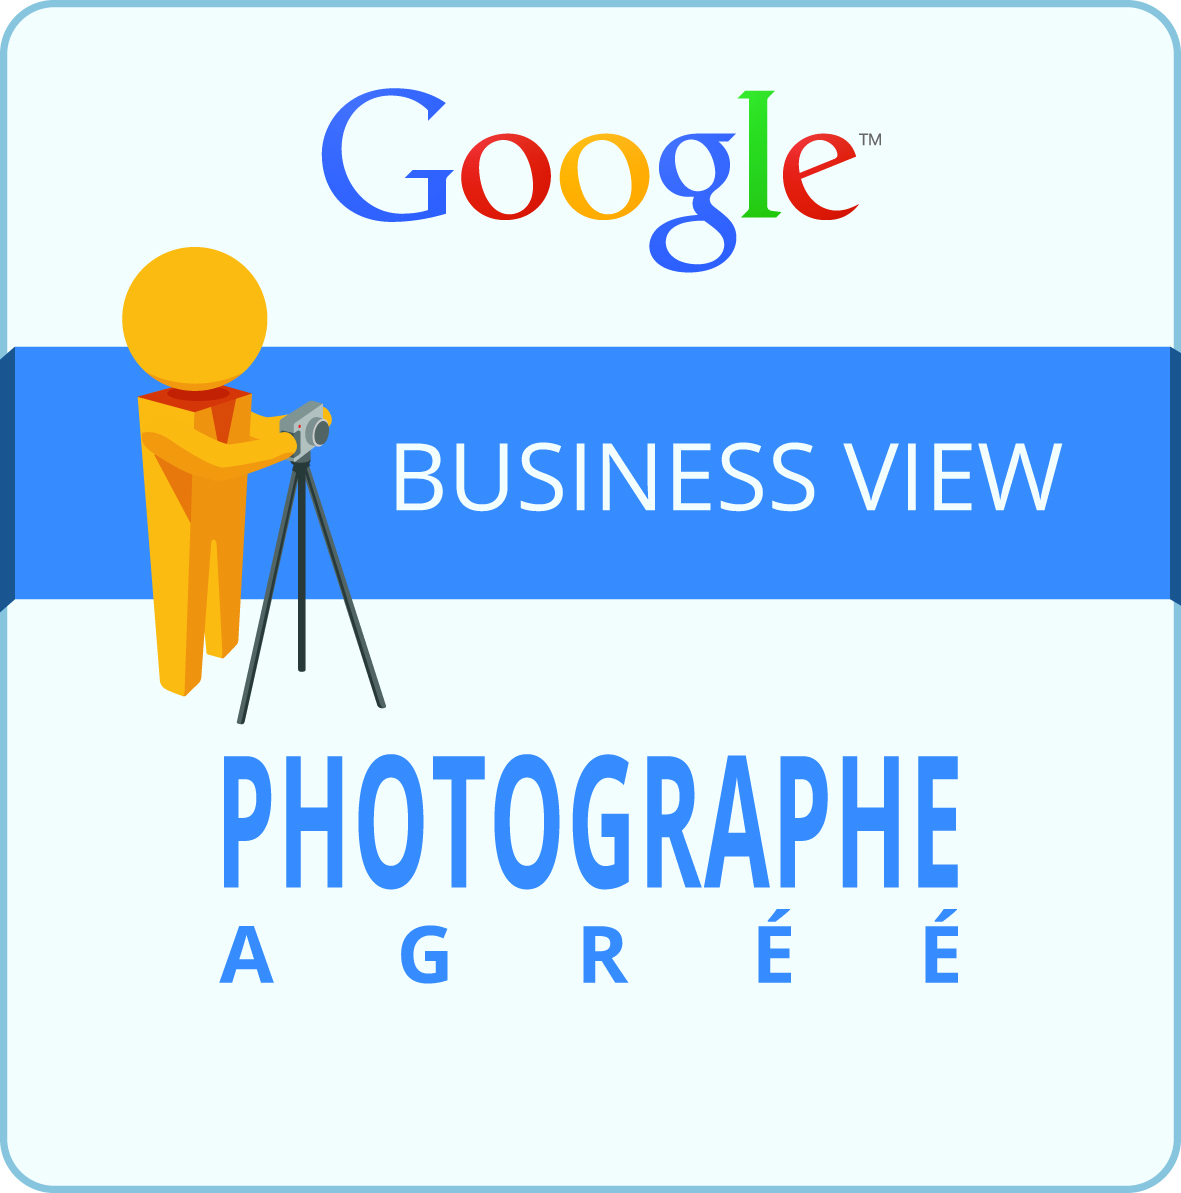 Photographe agréé Google Business View